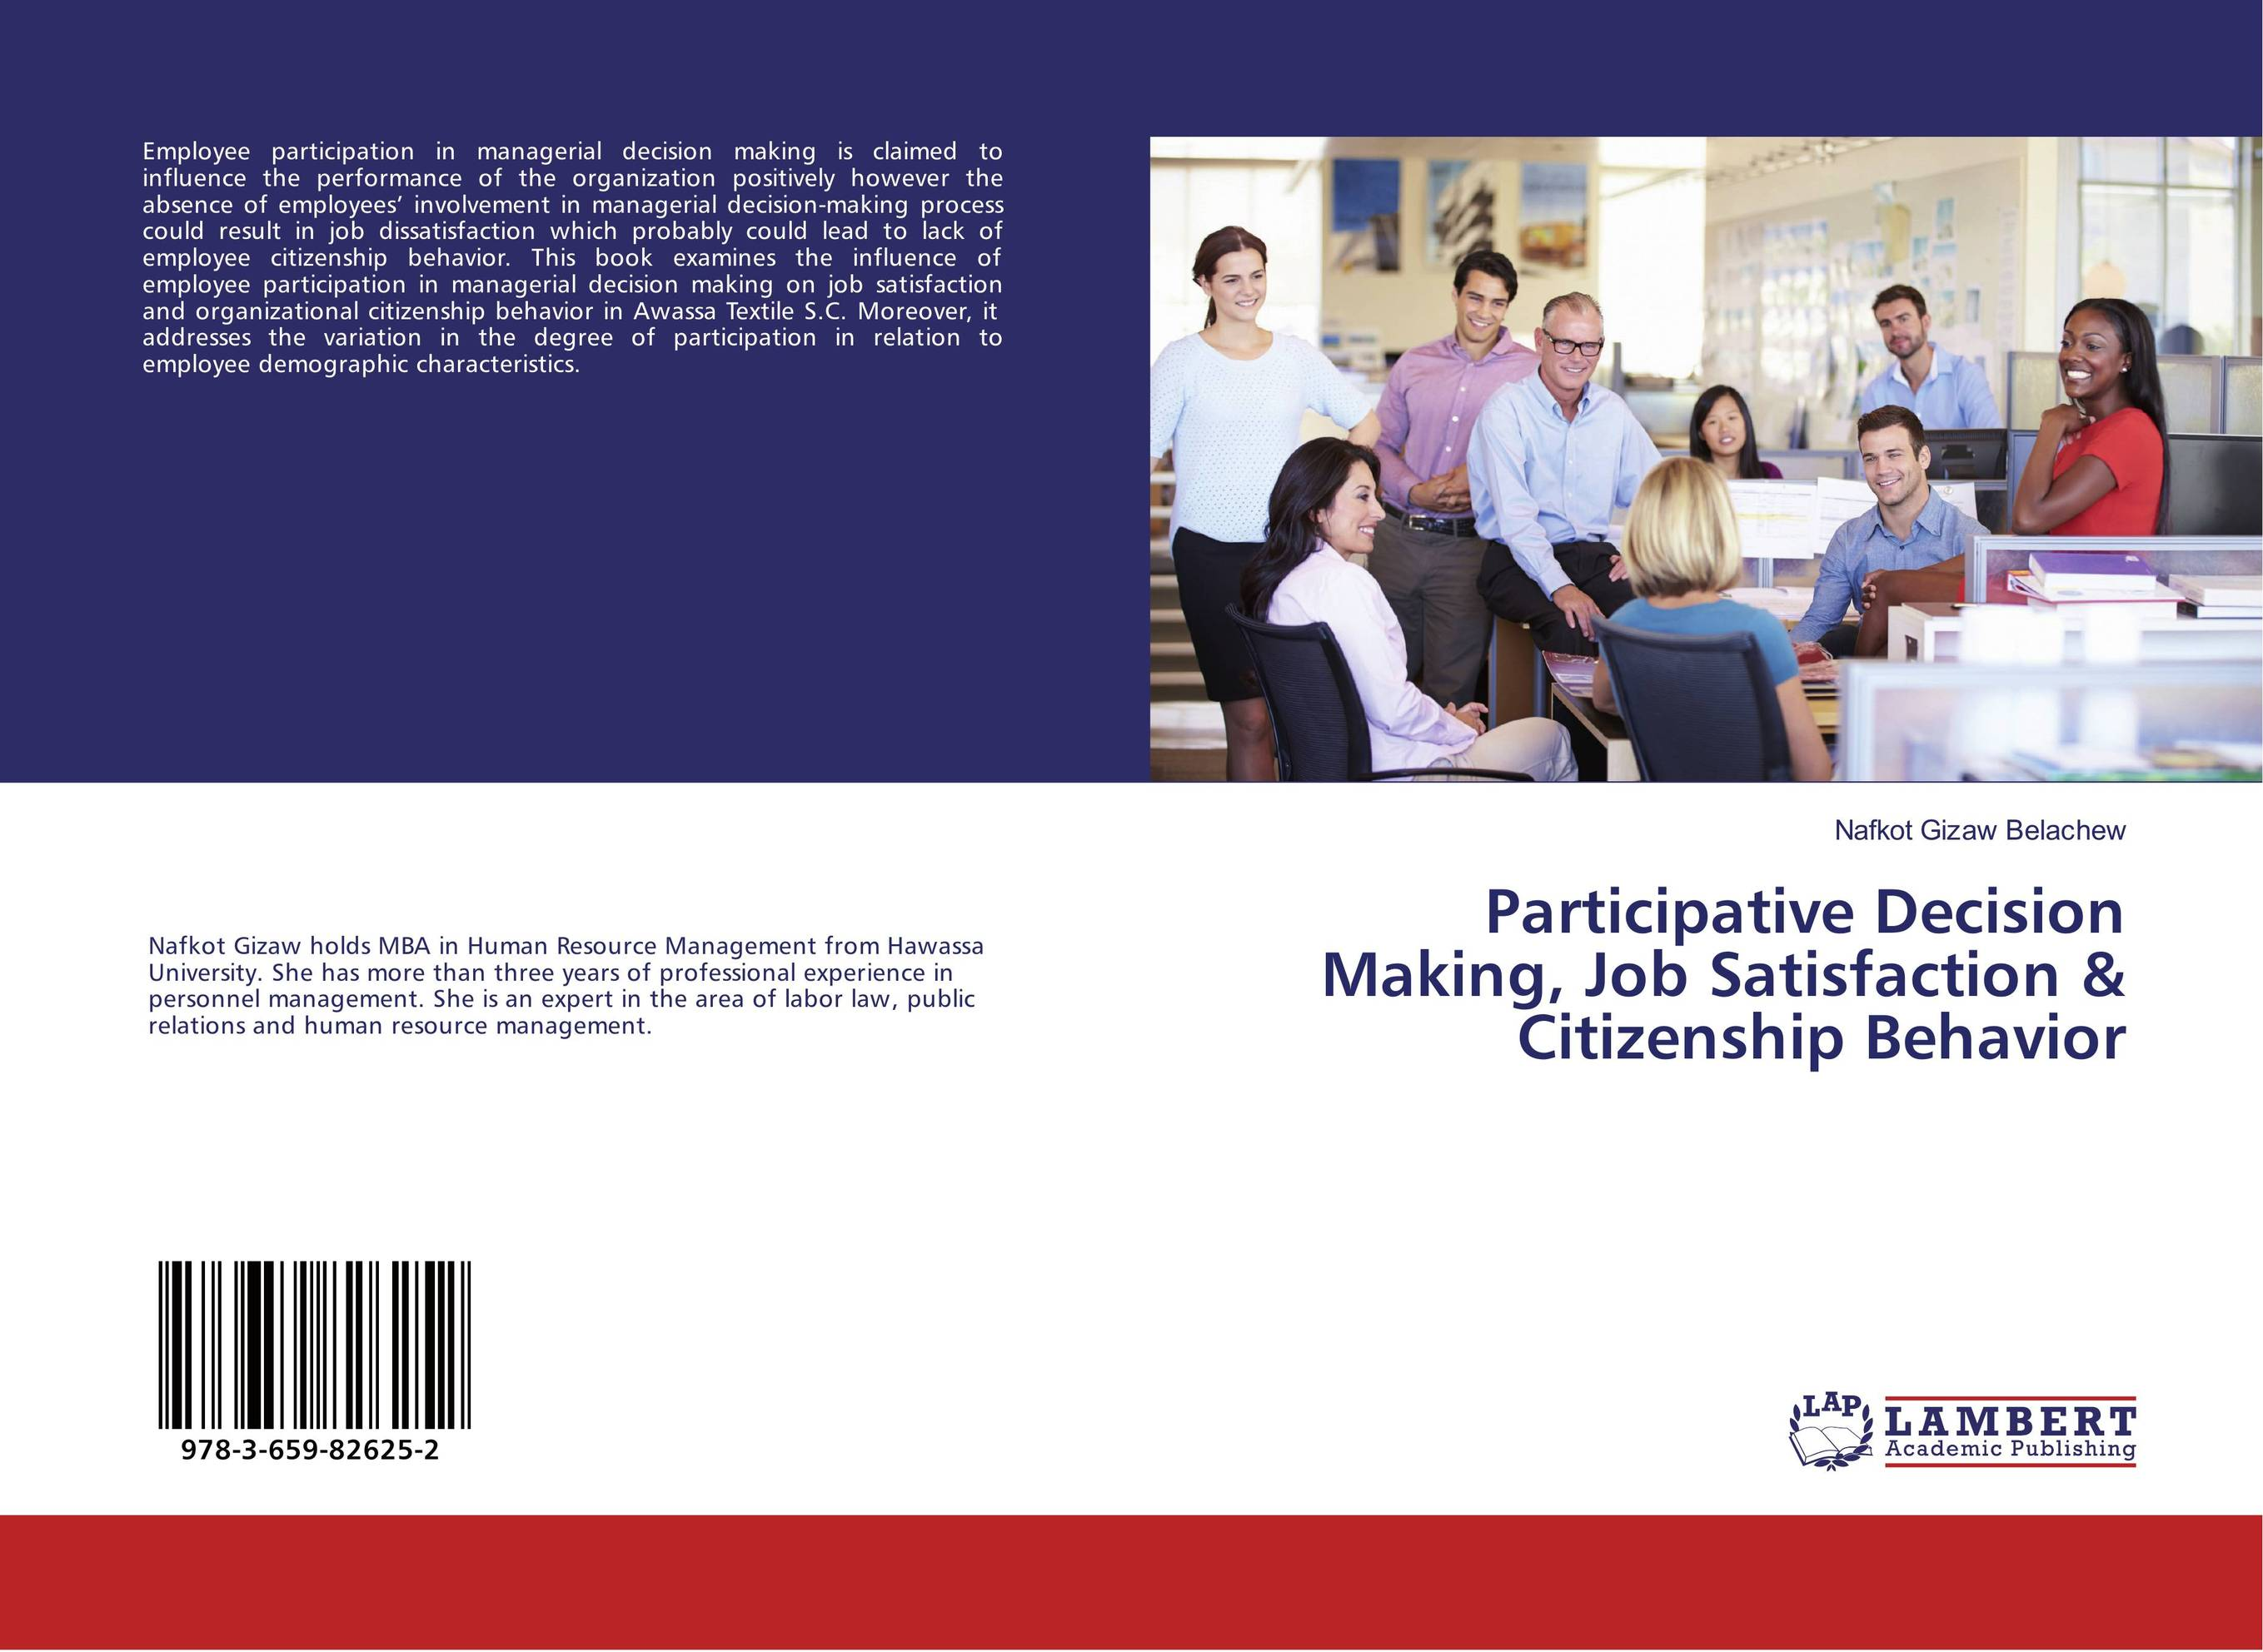 Participative Decision Making, Job Satisfaction & Citizenship Behavior frs 51 kl